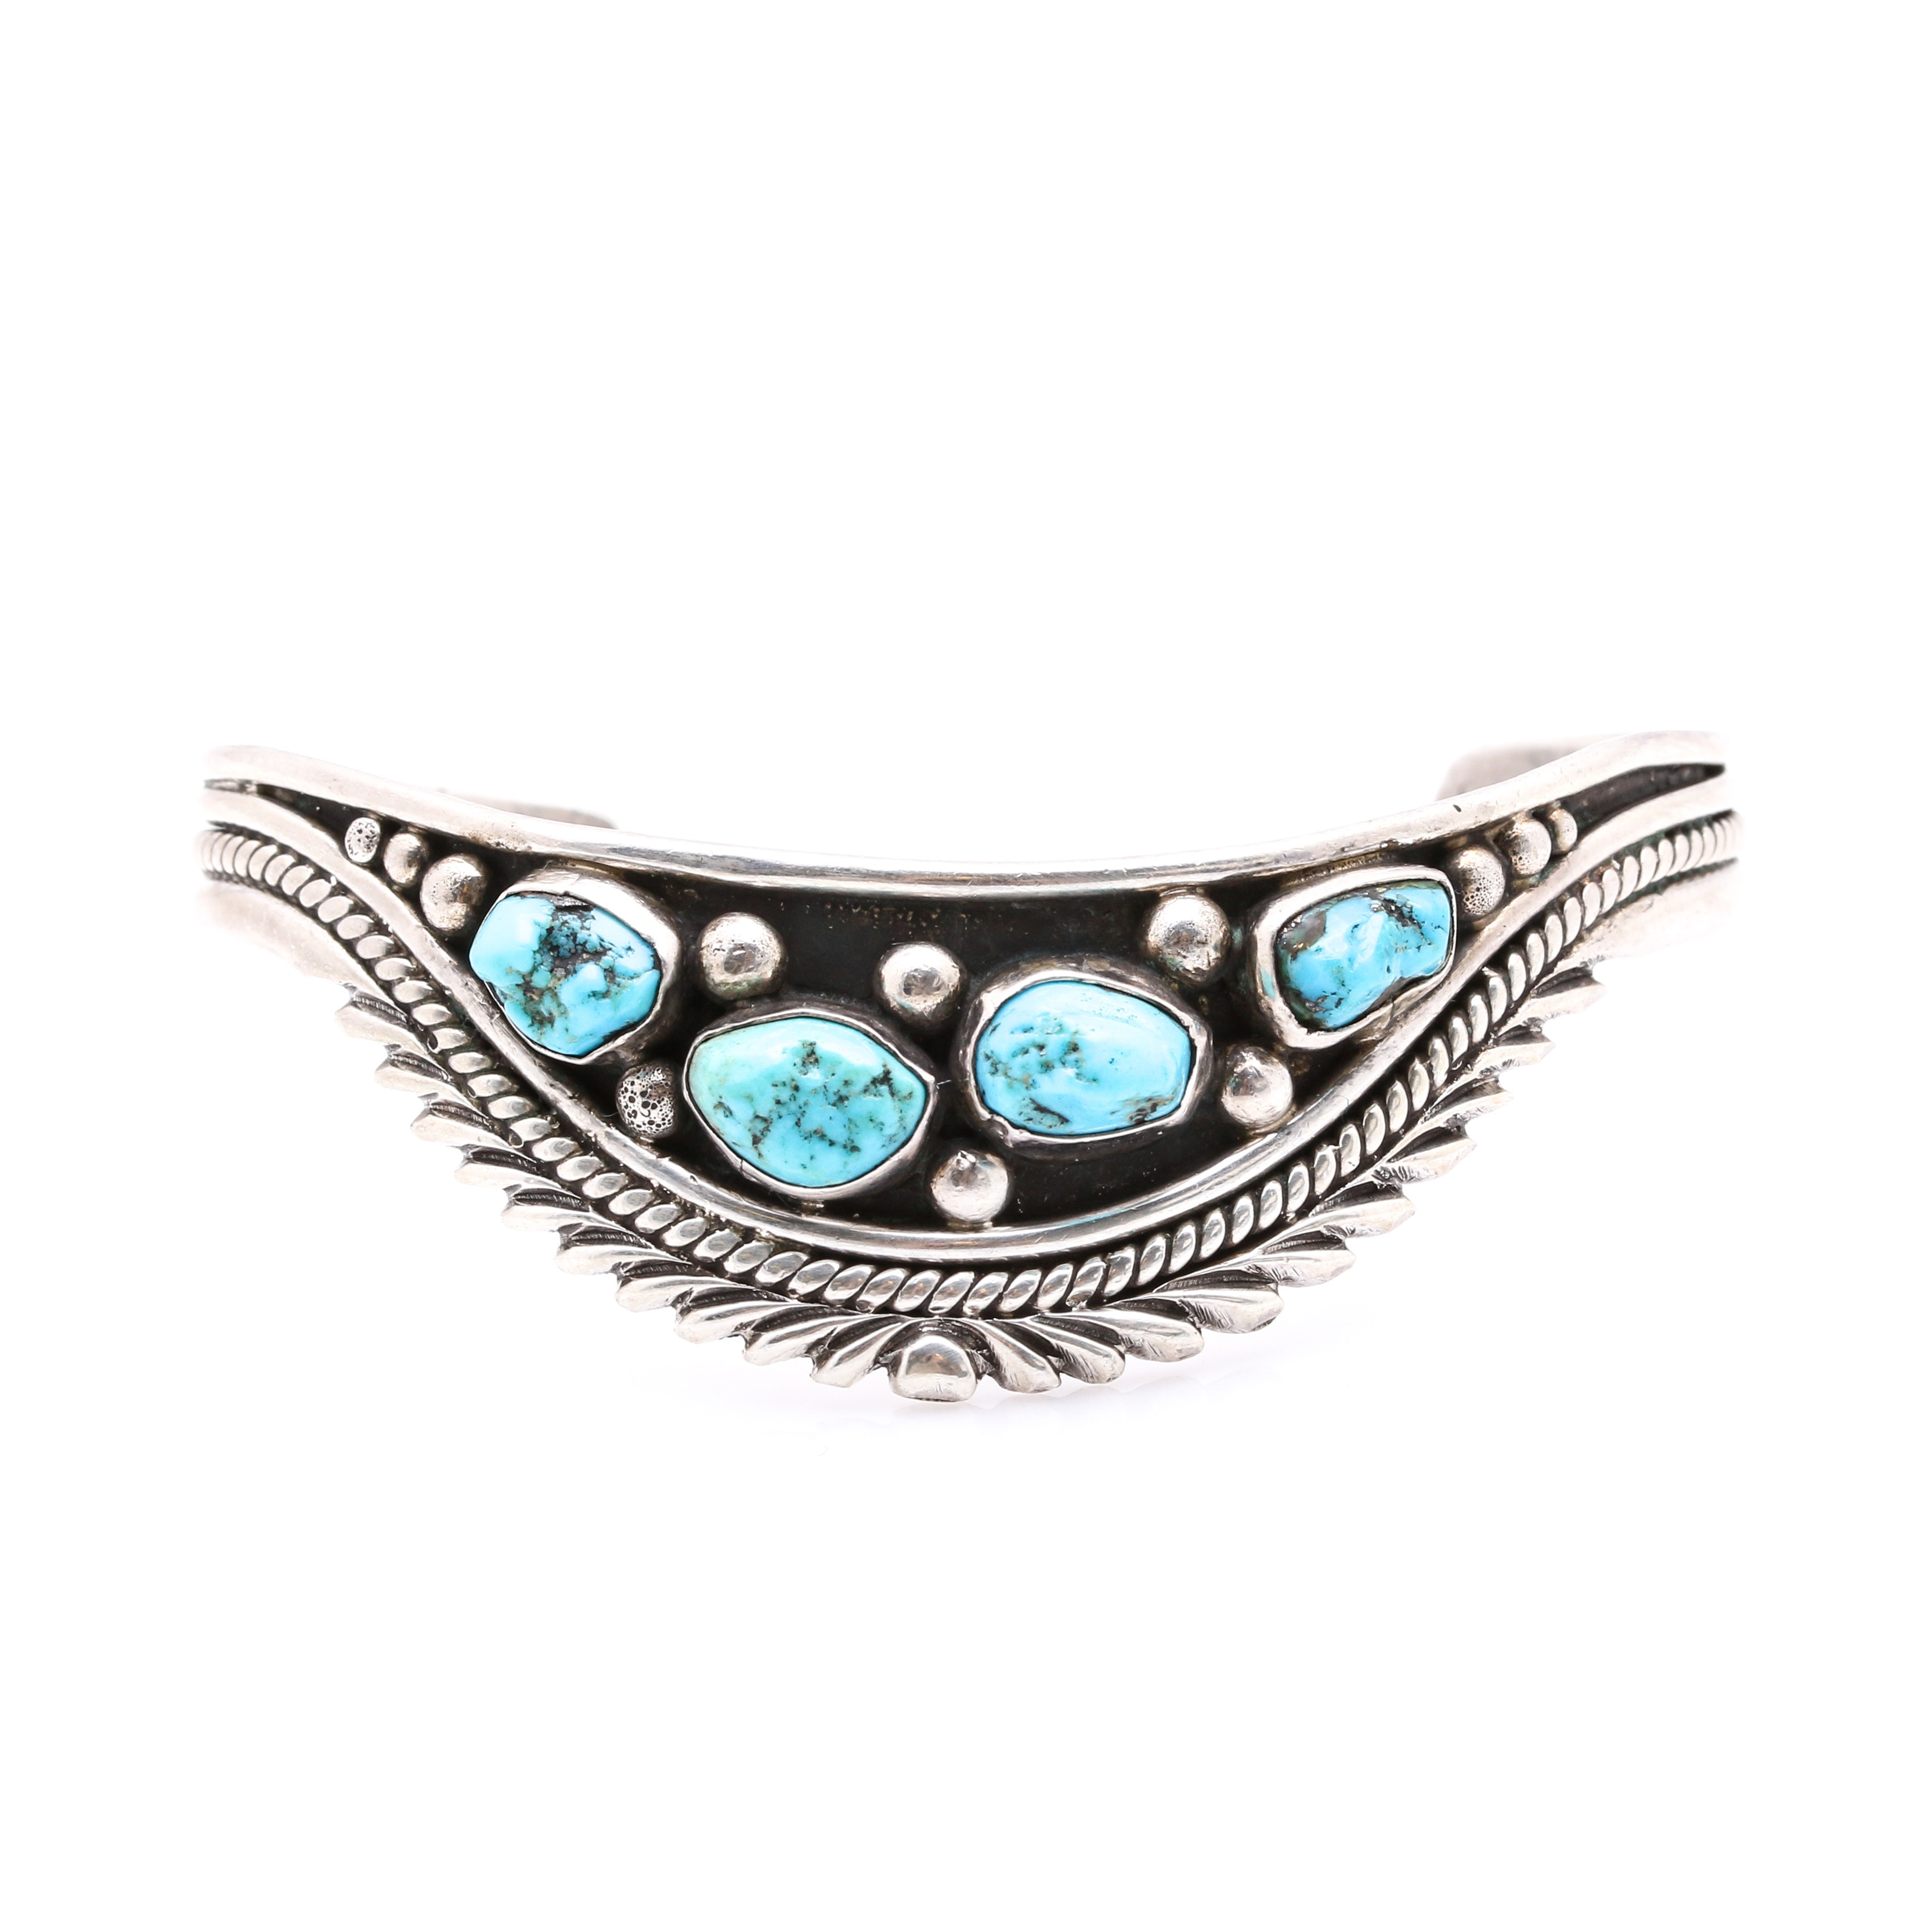 David K. Lister Navajo Sterling Silver Turquoise Cuff